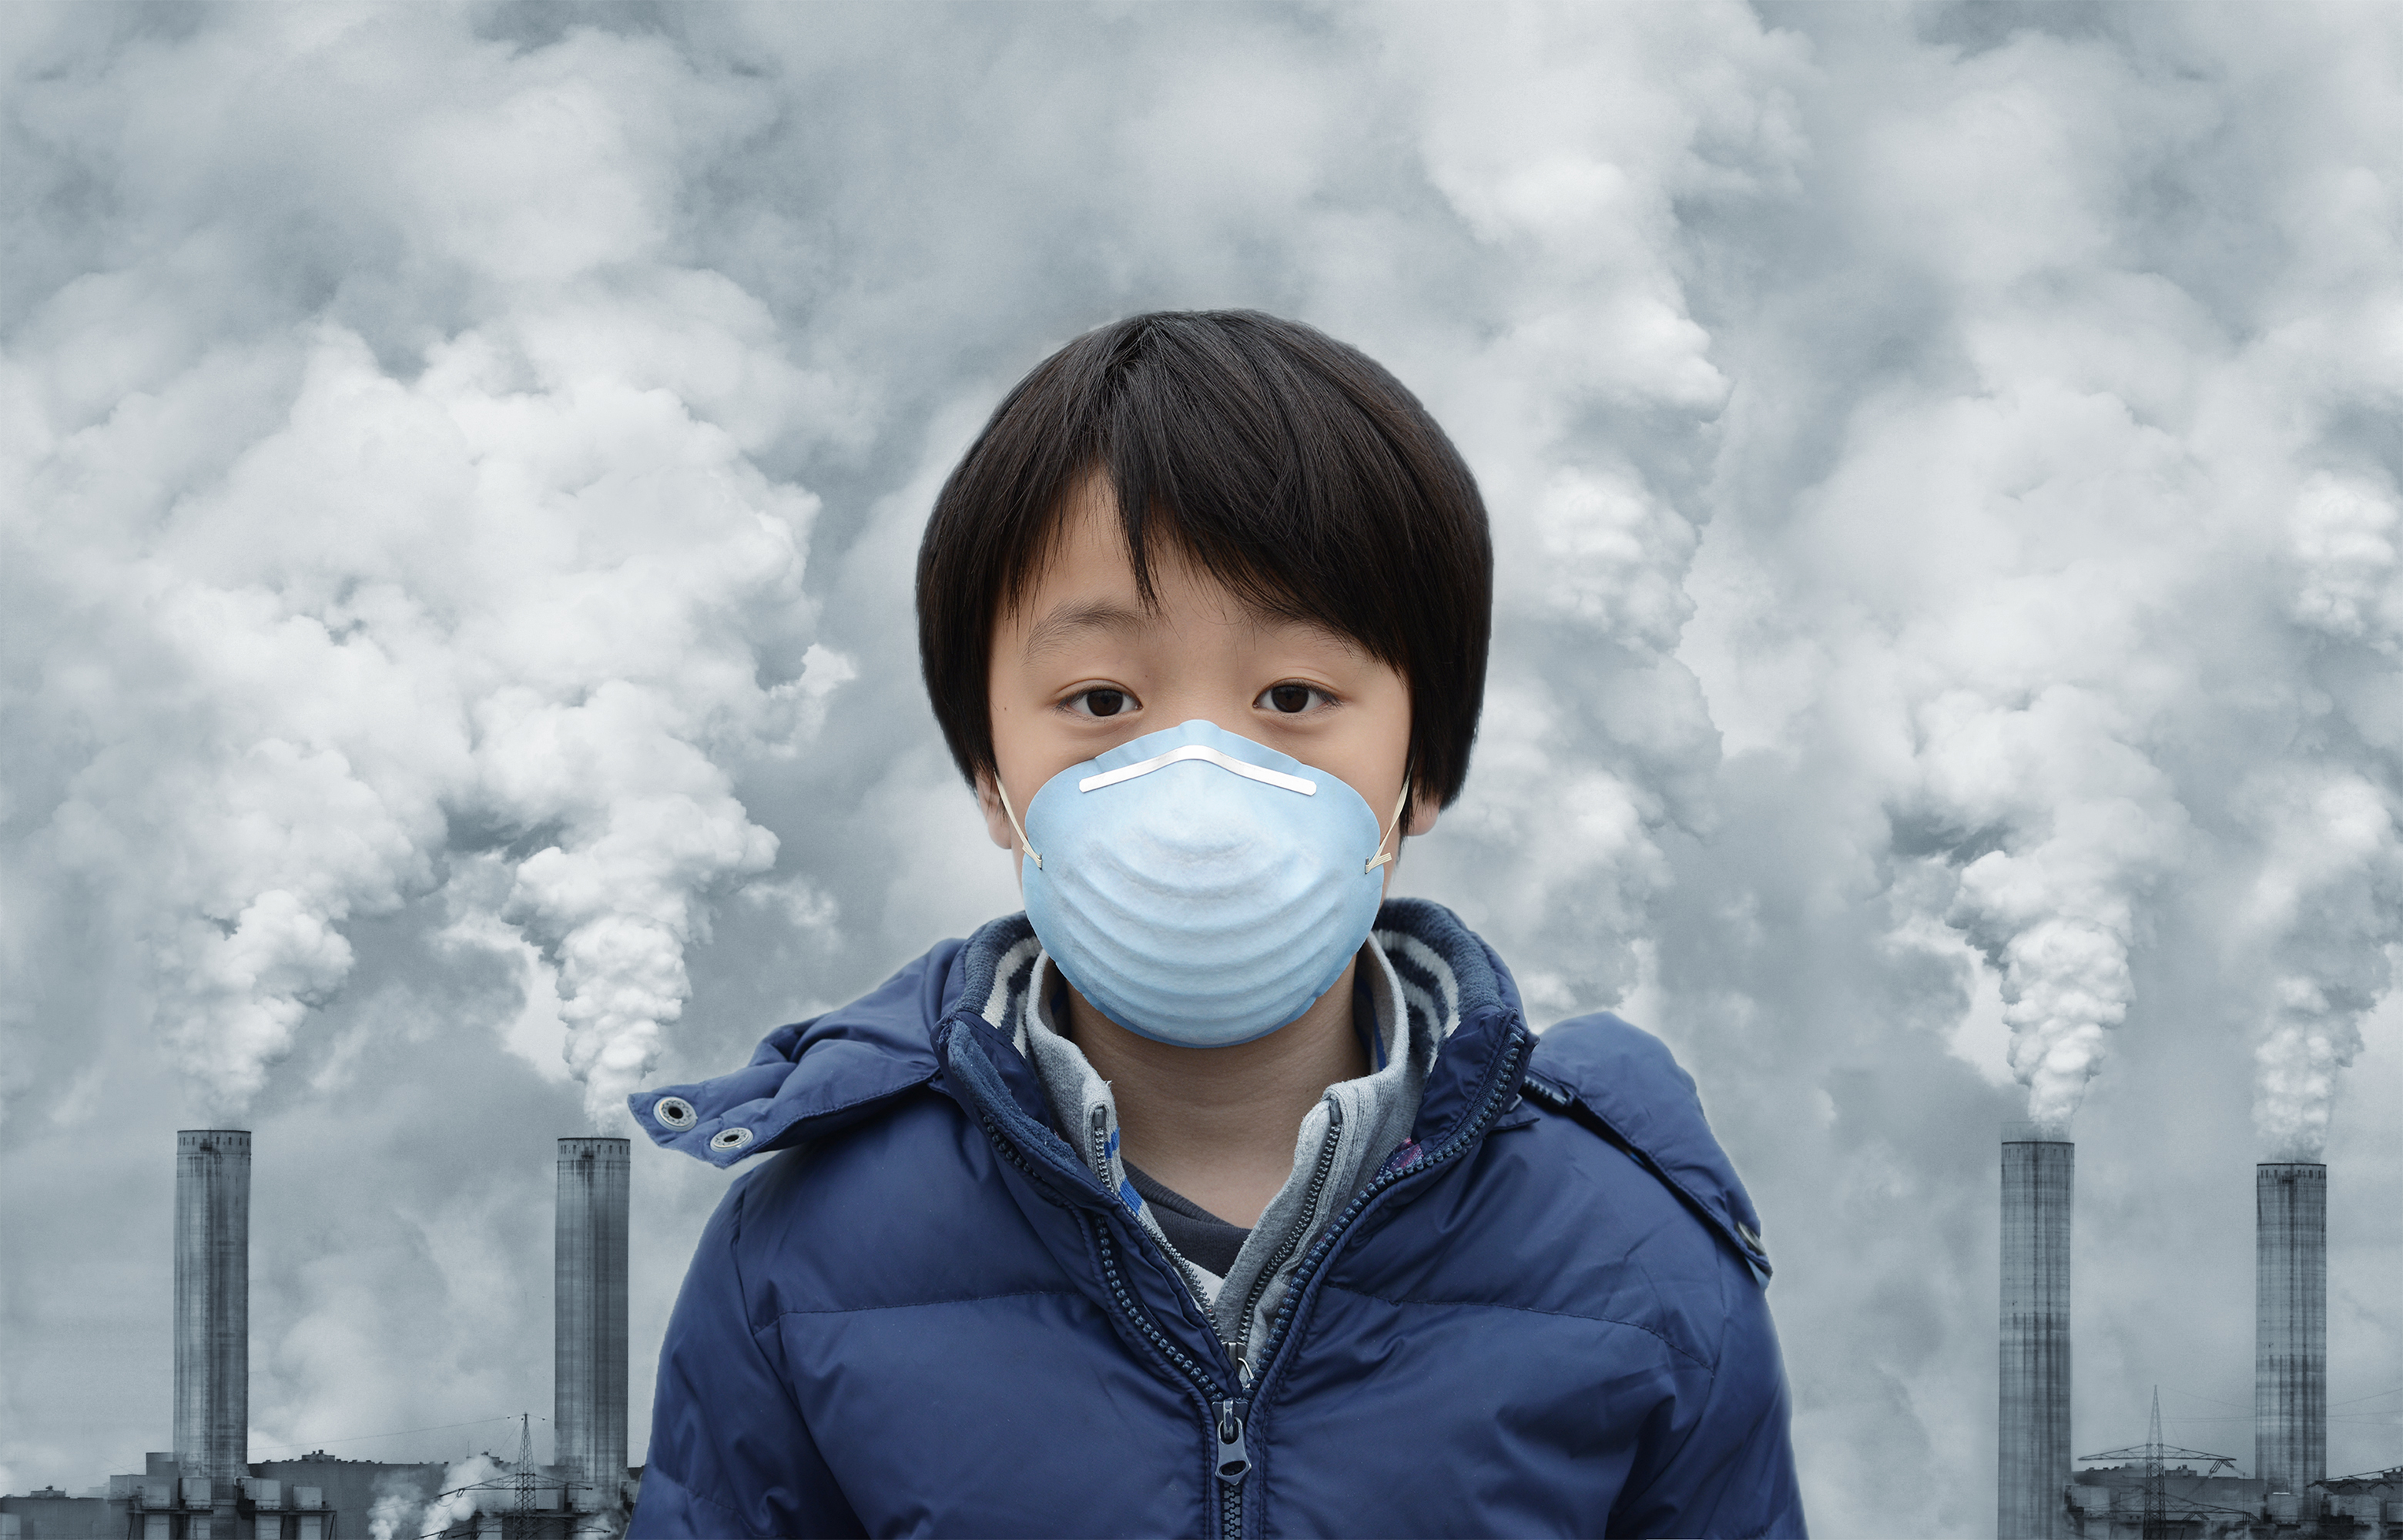 An image of a youth in front of a polluted sky.